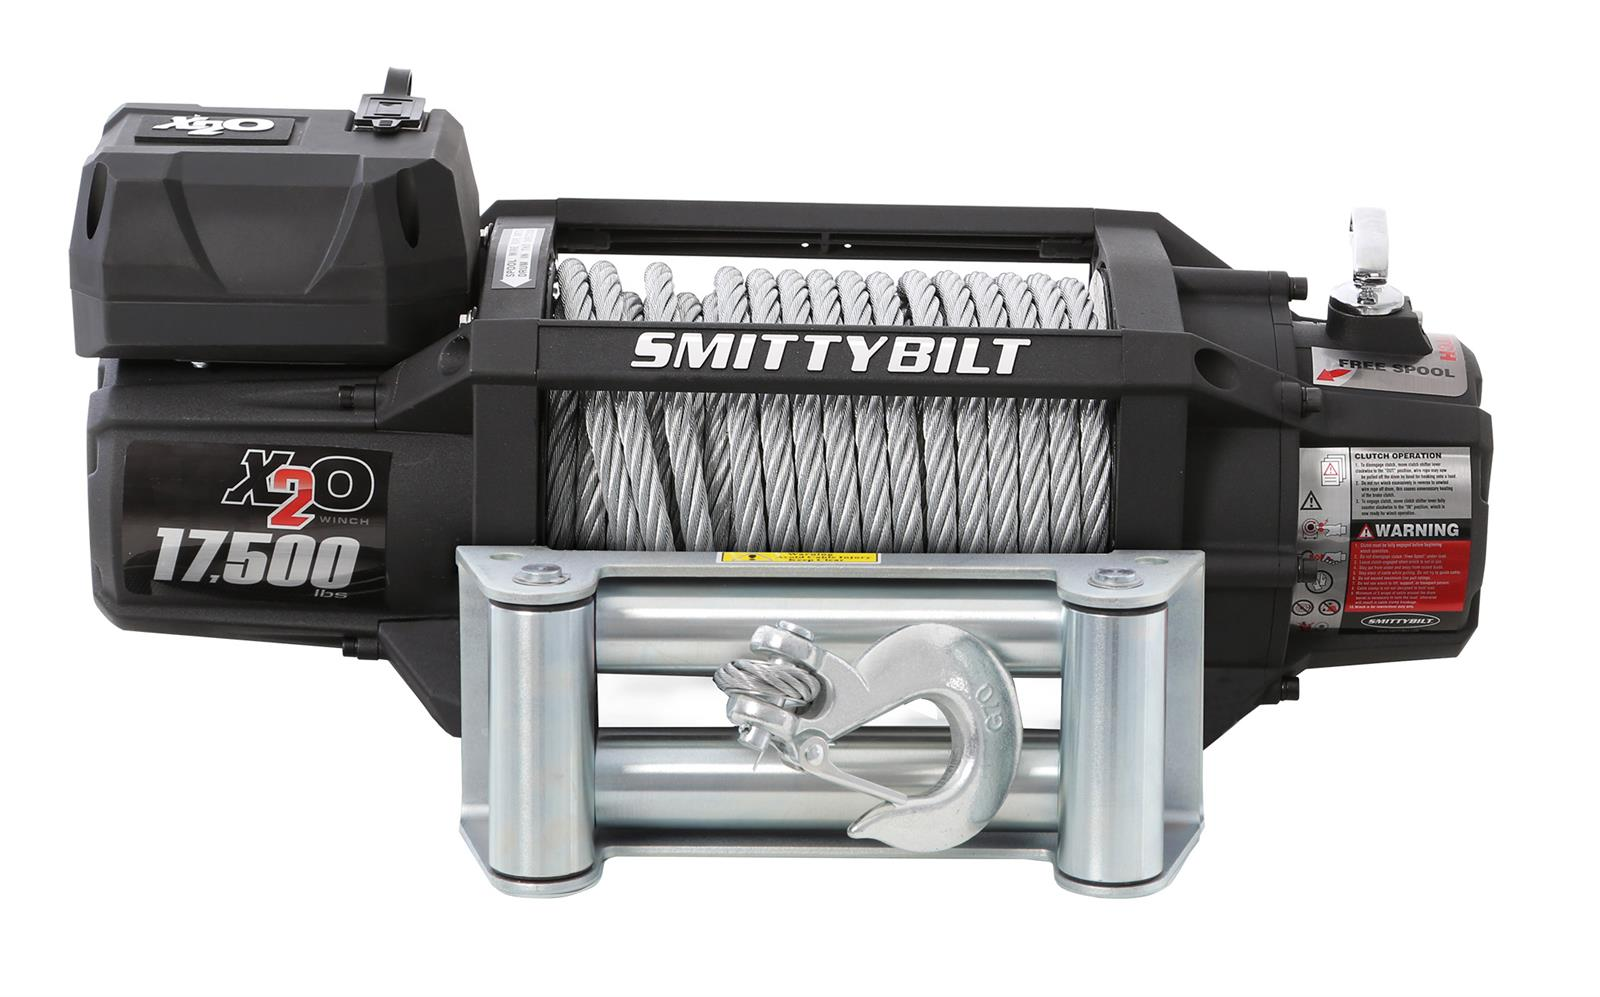 hight resolution of smittybilt gen2 x20 winches 97517 free shipping on orders over 99 at summit racing